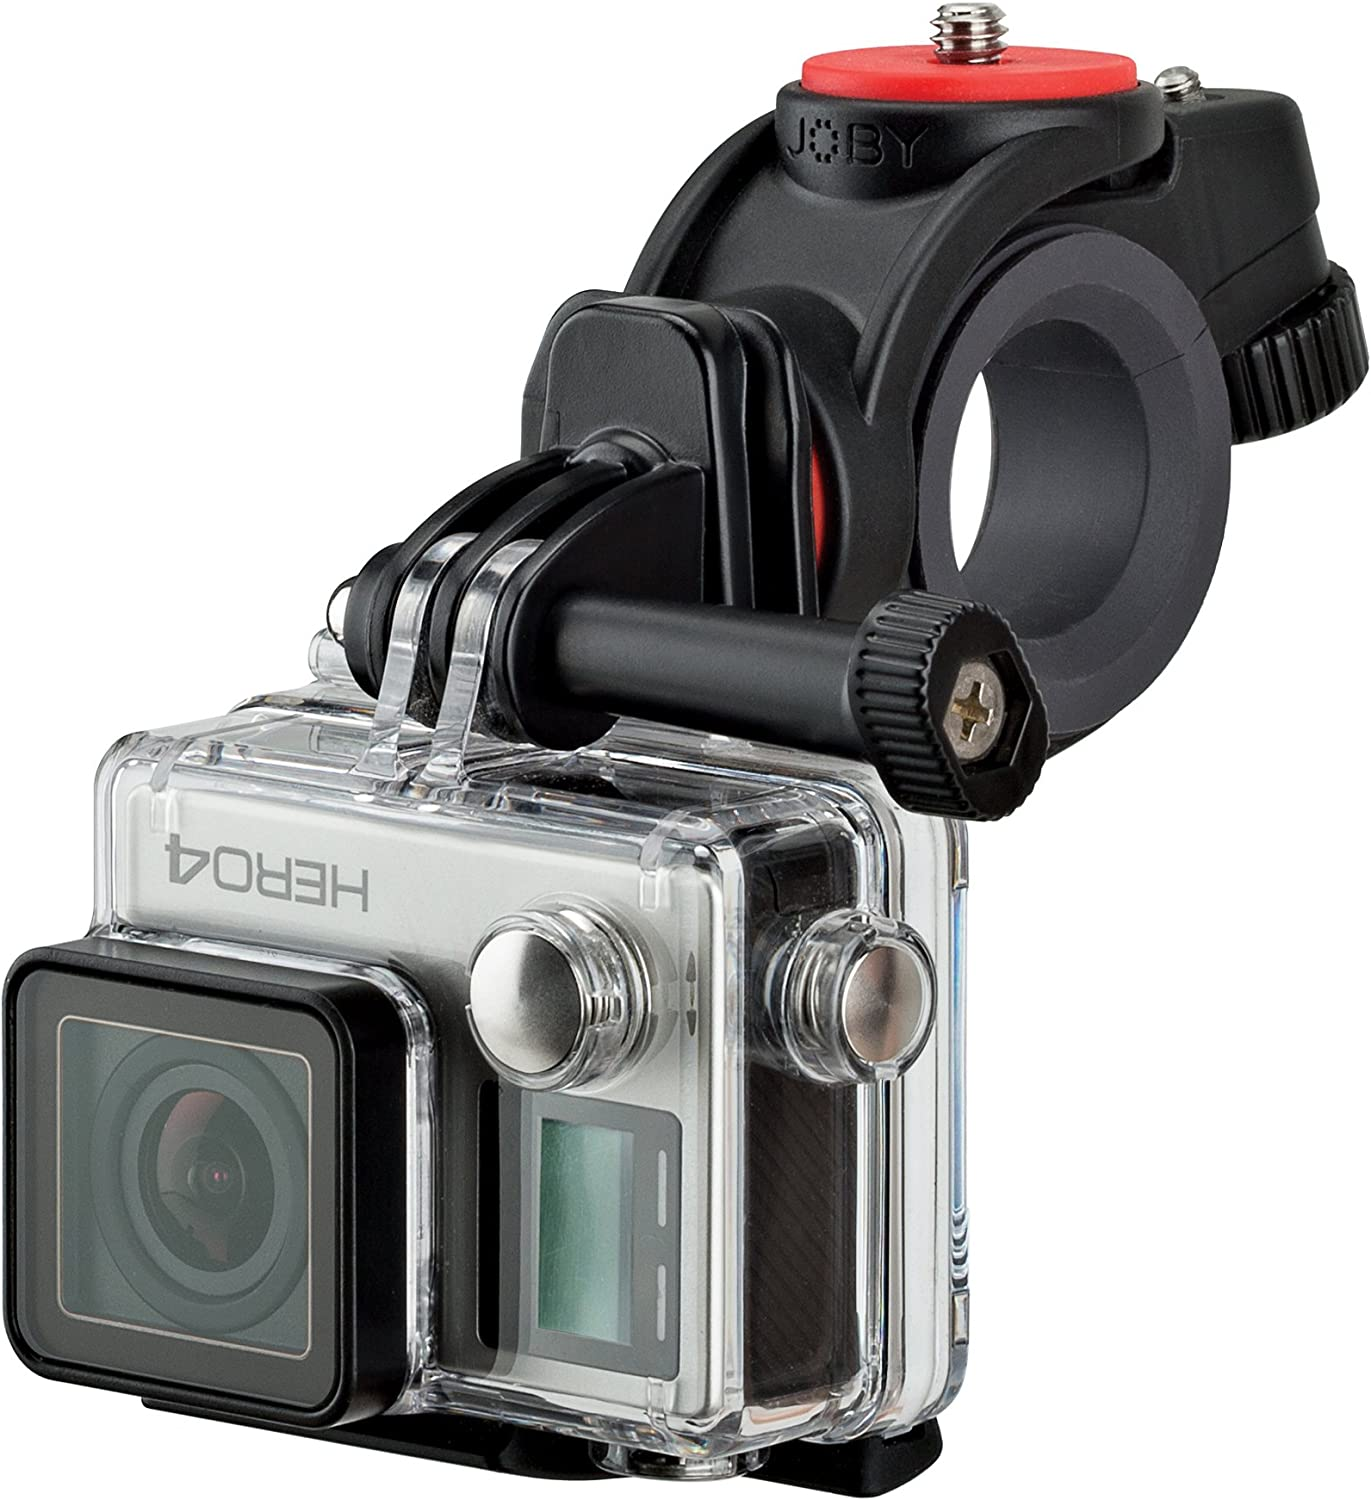 JOBY Bike Mount /& Light Pack for GoPro or Other Action Video Camera